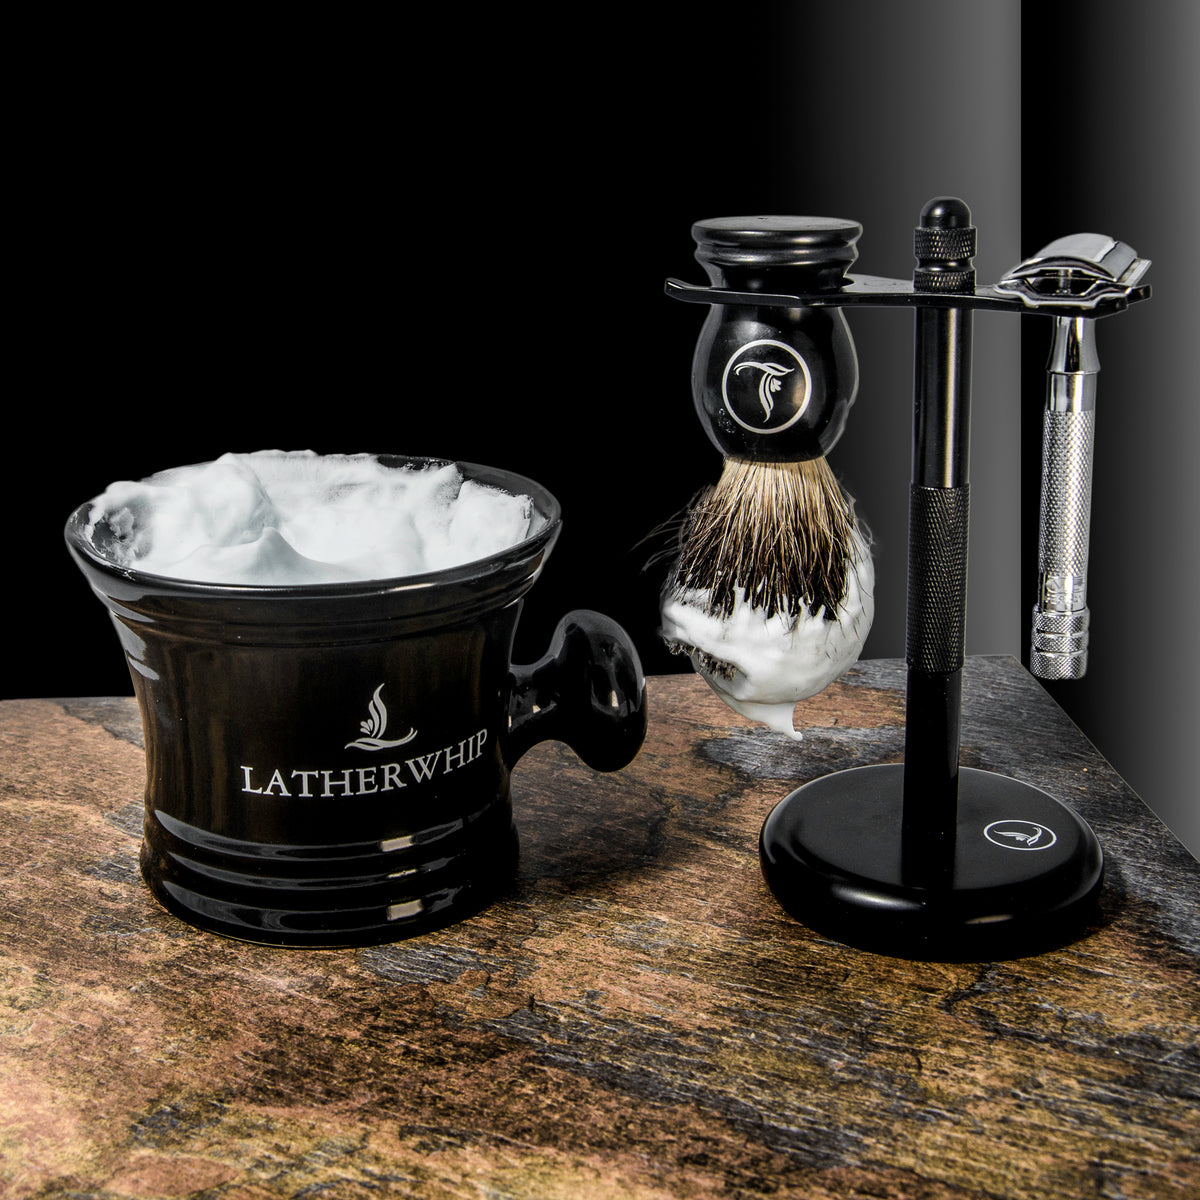 Latherwhip - Shaving Brushes, Shaving Bowls, and Shaving Stands